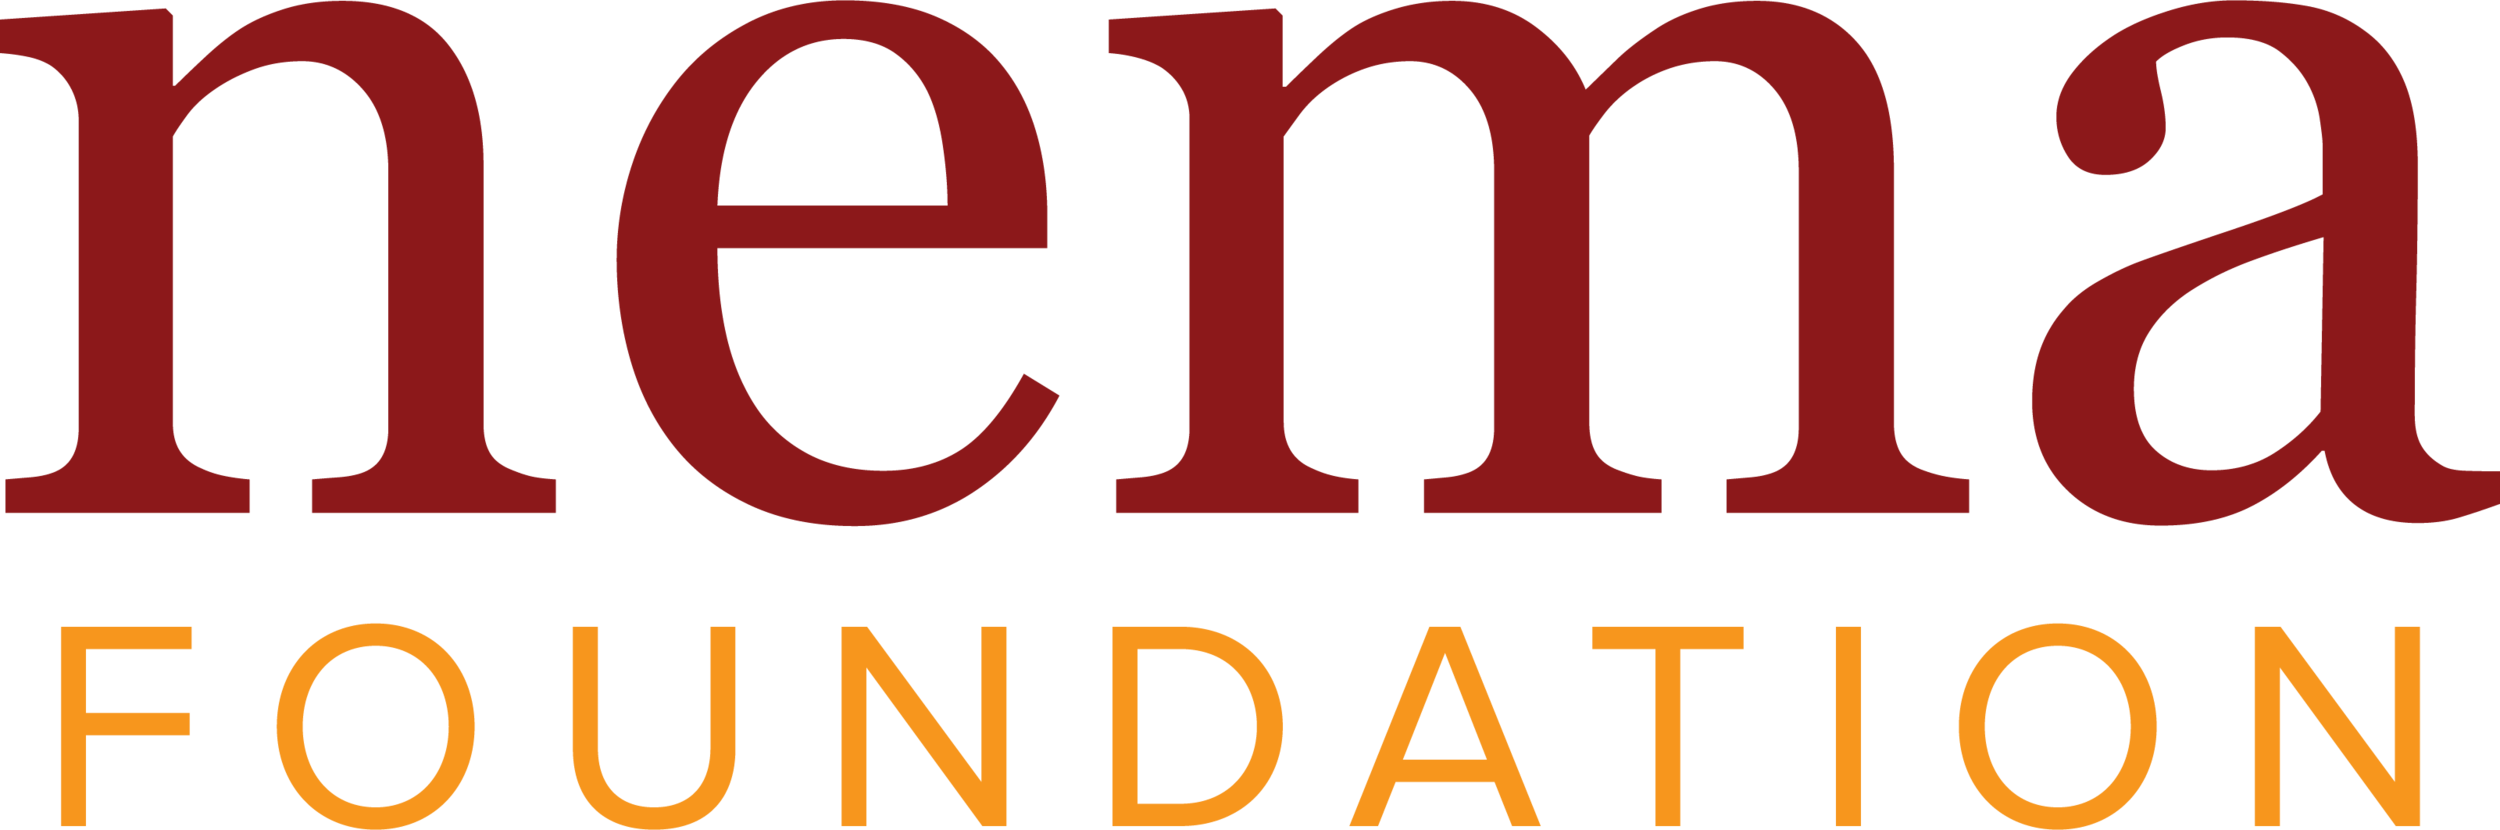 NEMA-wordmark-primary.png